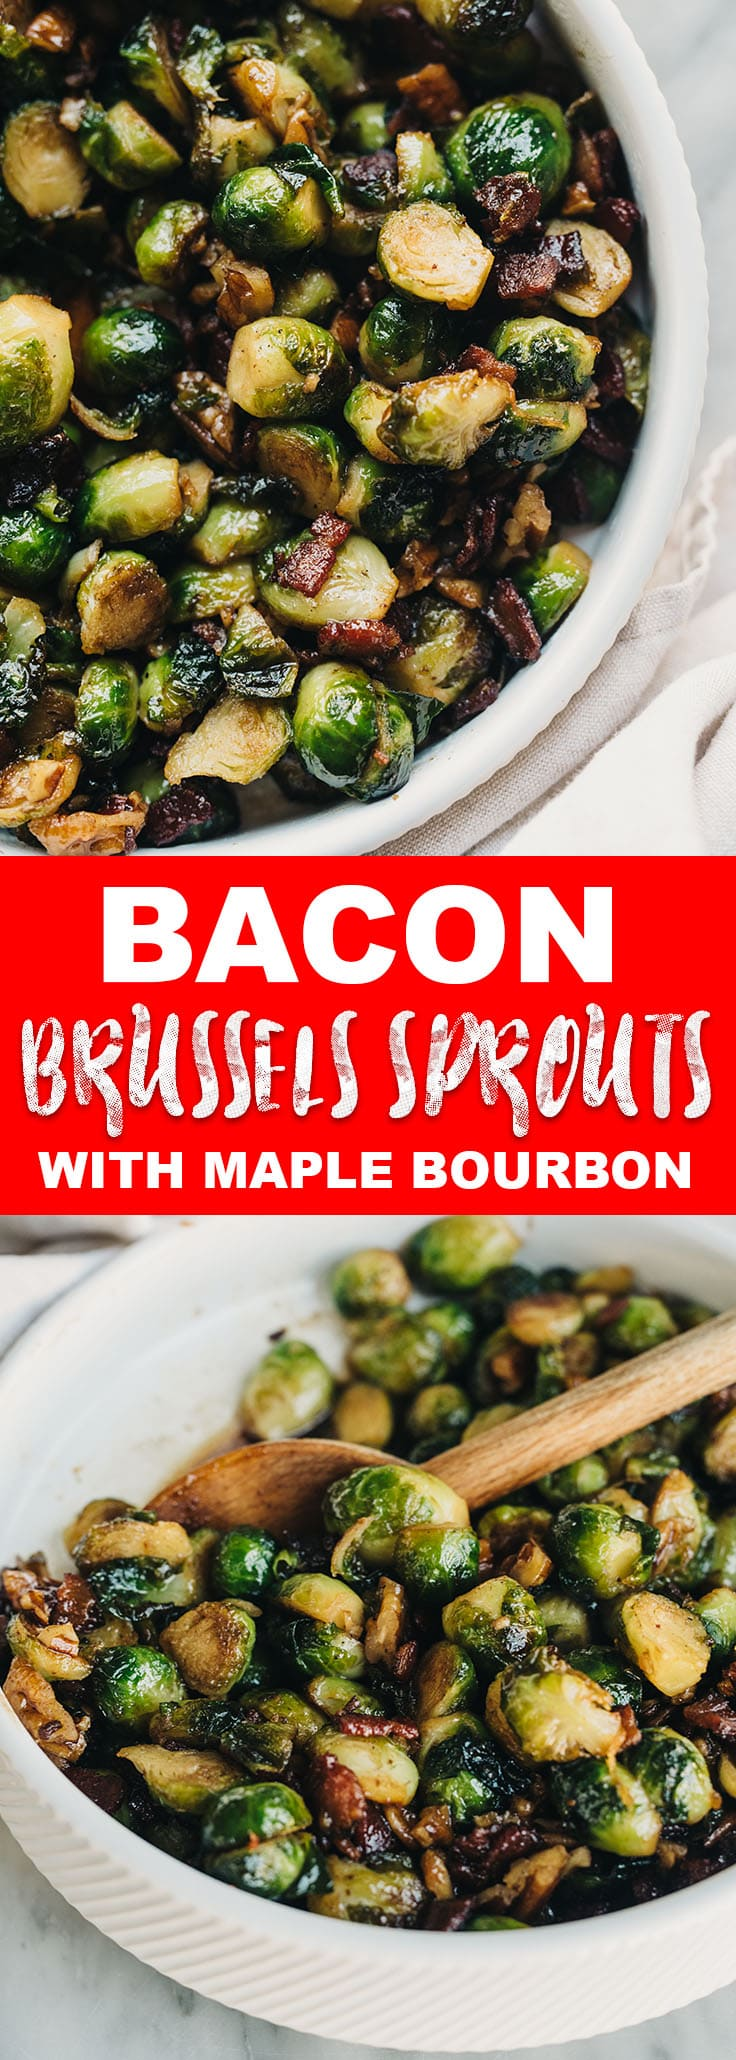 Maple bourbon glaze makes these crispy bacon brussels sprouts just a little extra special. The entire family will love this easy and fast Thanksgiving side dish! #paleo #glutenfree #sidedish #thanksgiving #recipe #brusselssprouts #bacon #maple #bourbon